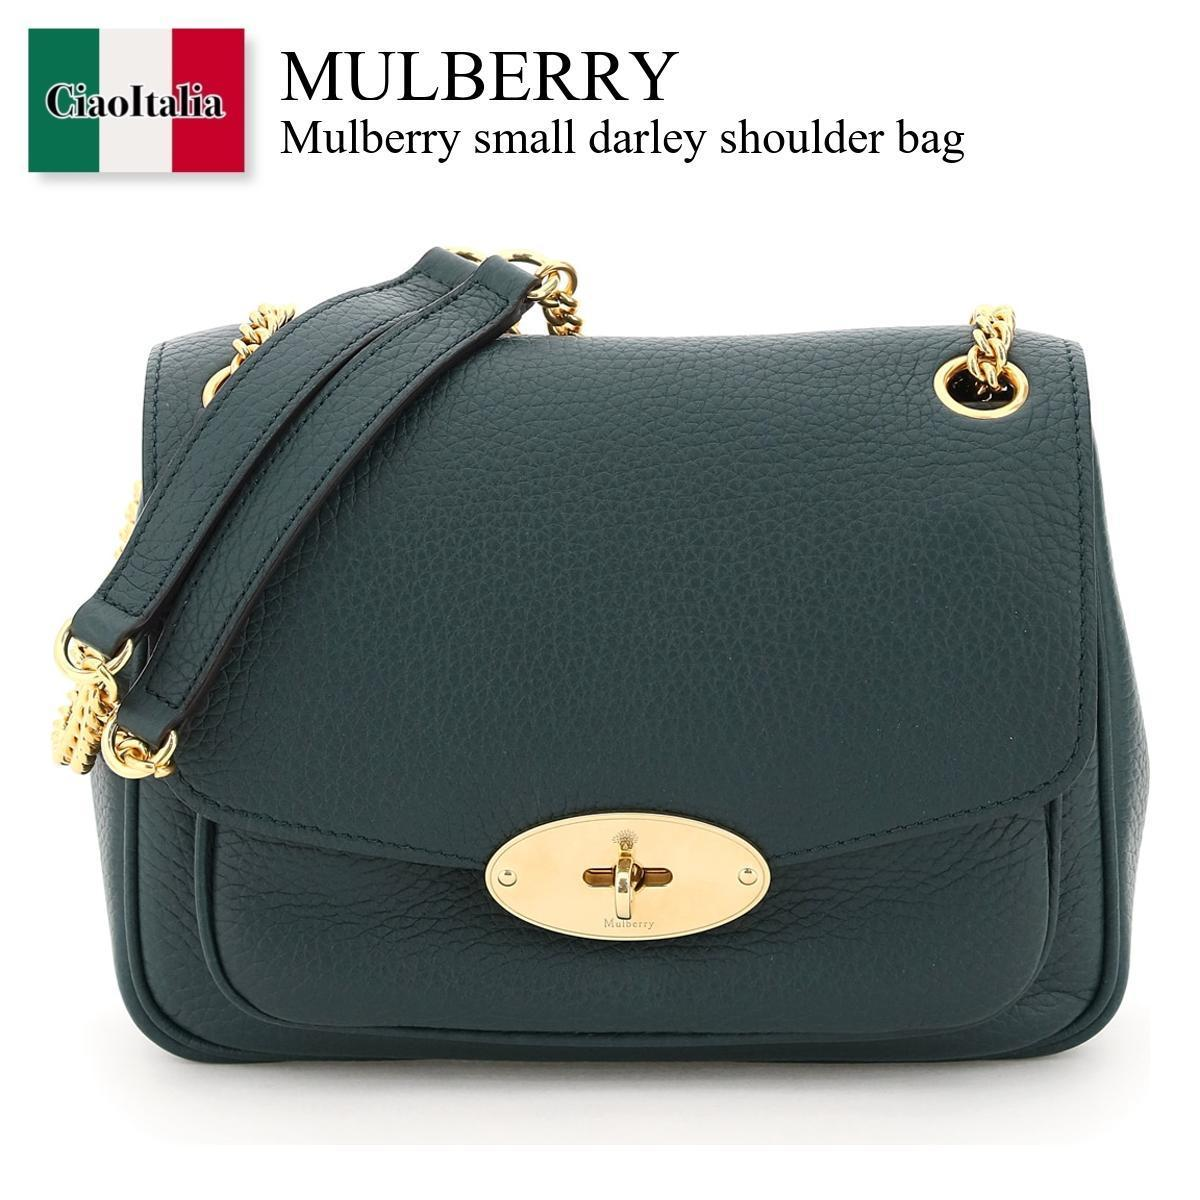 Mulberry small darley shoulder bag (Mulberry/ショルダーバッグ・ポシェット) HH6191 736  HH6191736  HH6191736Q633